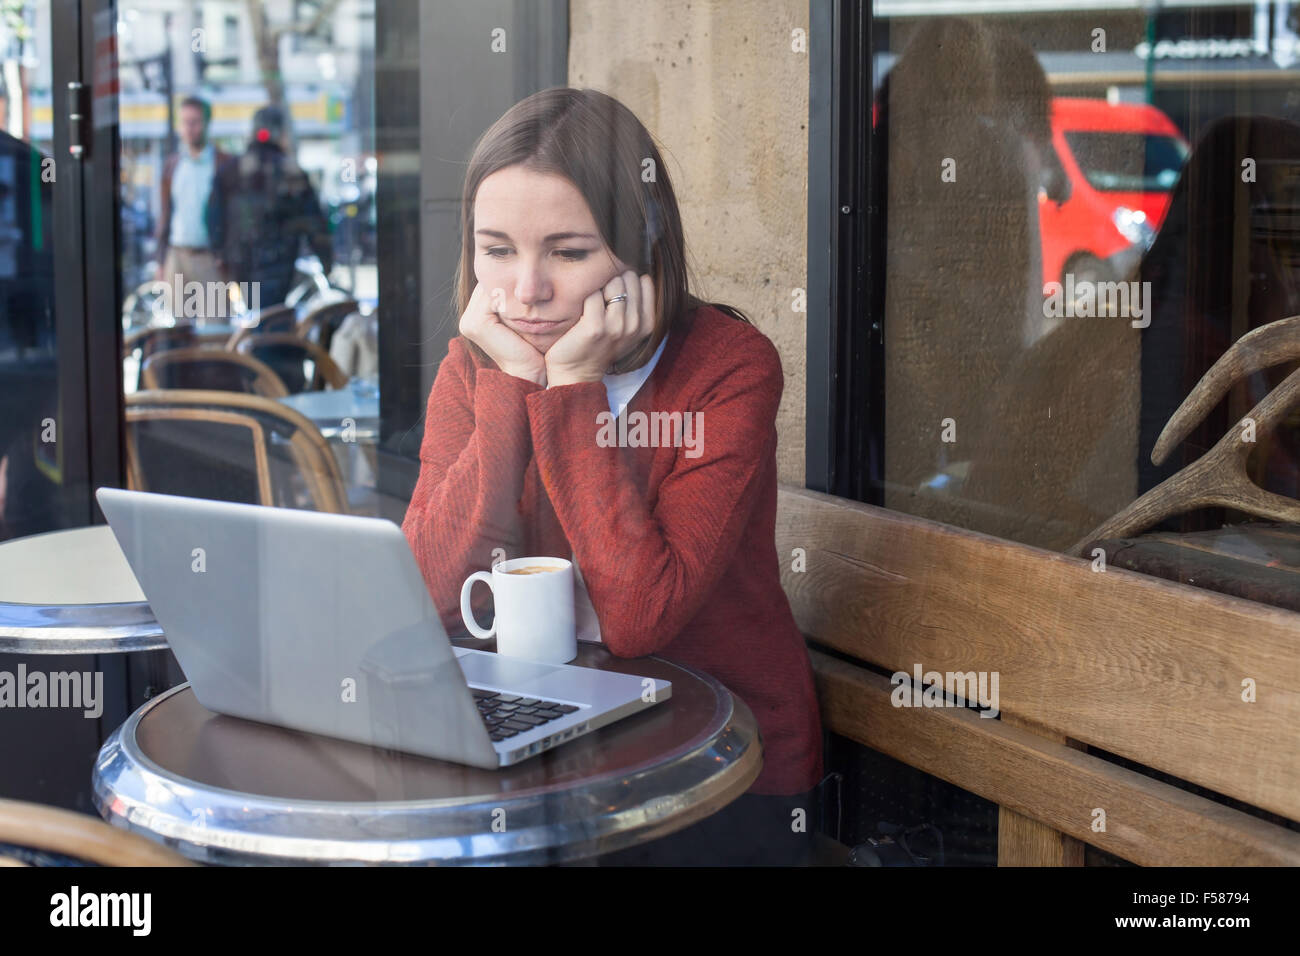 envy concept, bored sad woman in front of computer - Stock Image